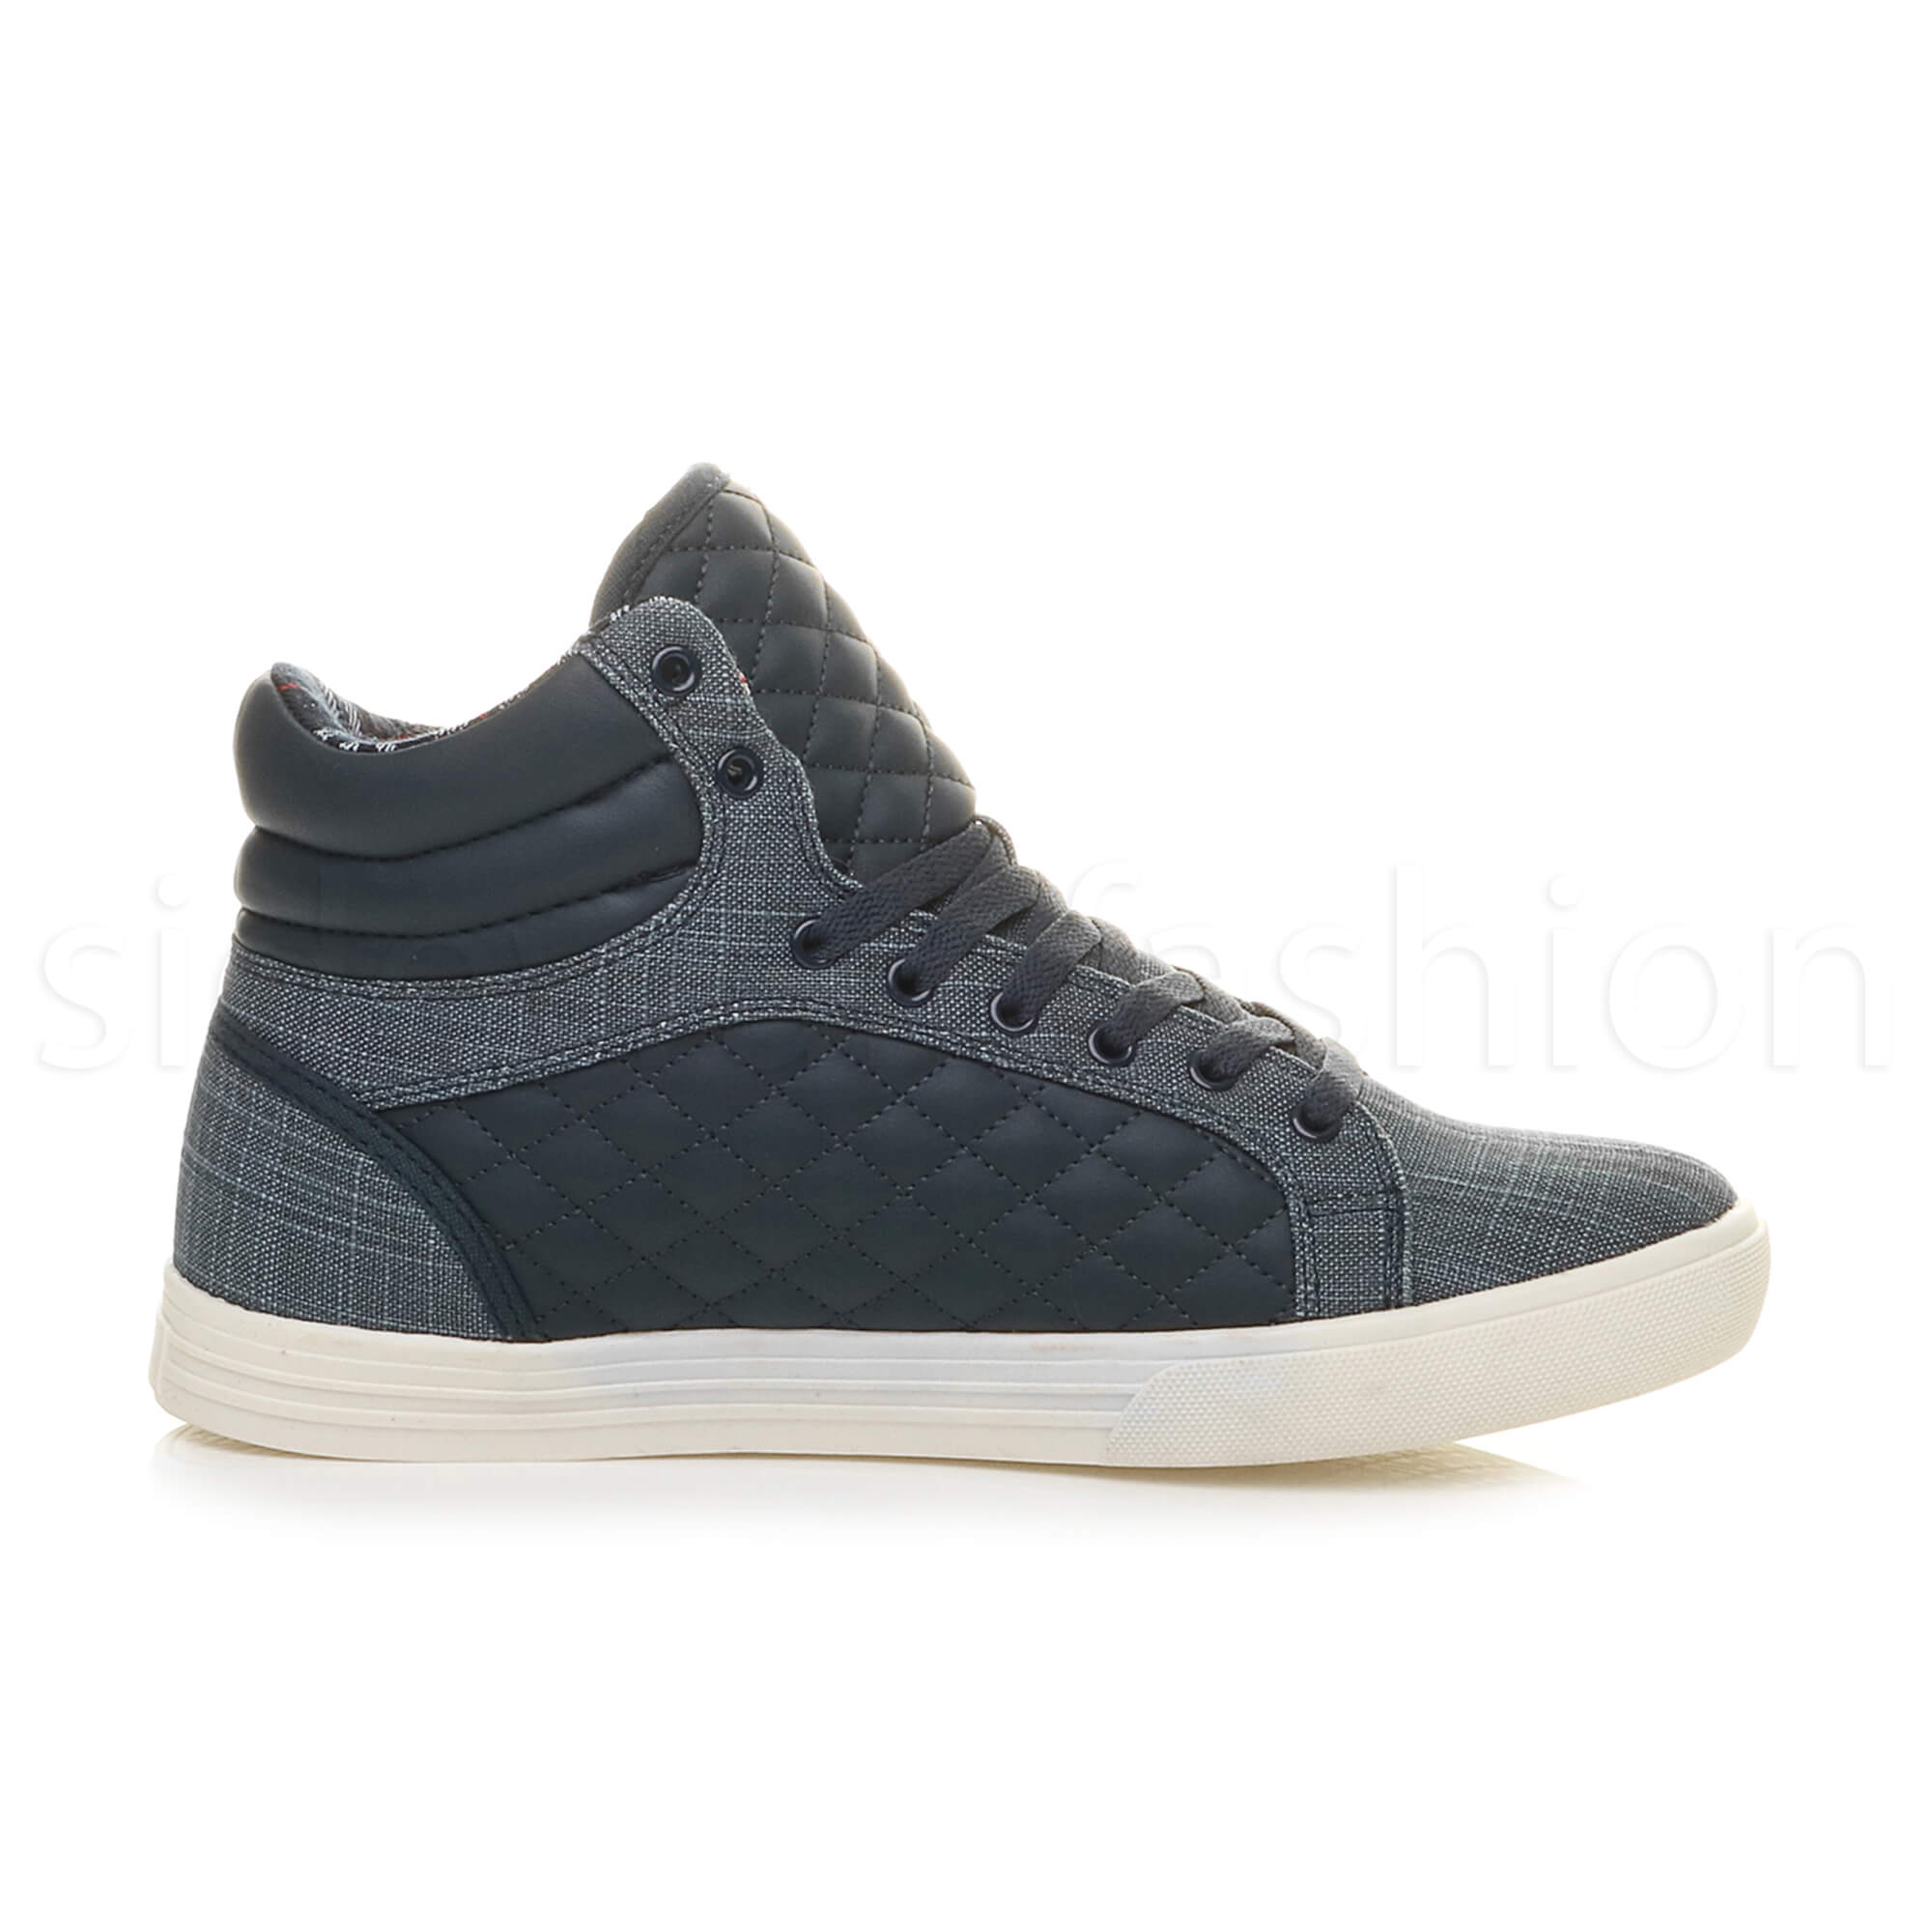 Mens-flat-lace-up-quilted-casual-hi-high-top-ankle-boots-trainers-sneakers-size thumbnail 25